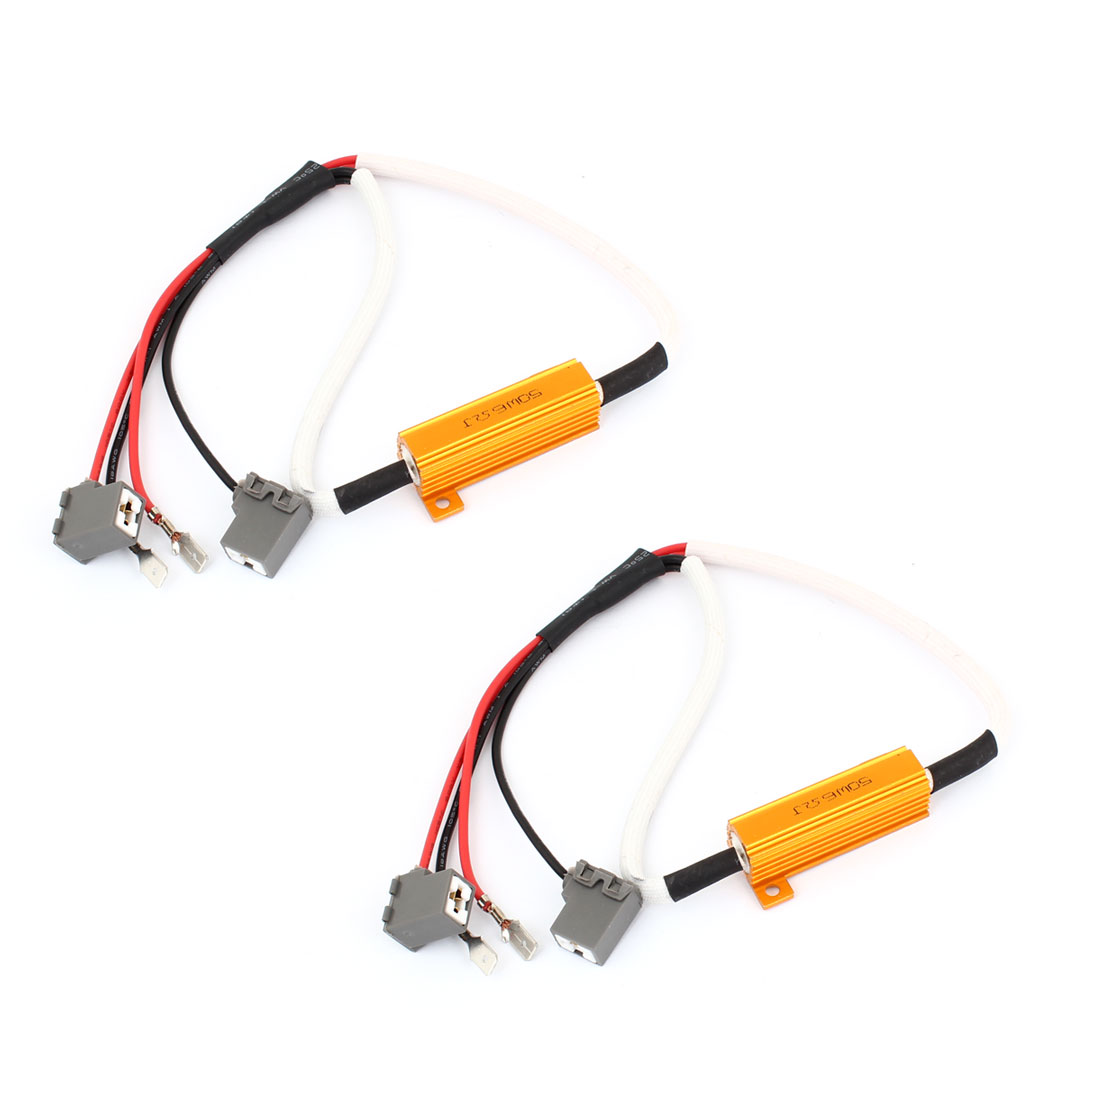 2PCS Car H3 H1 Daytime Running Light Erro Free Resistor Warning Canceler Decoder